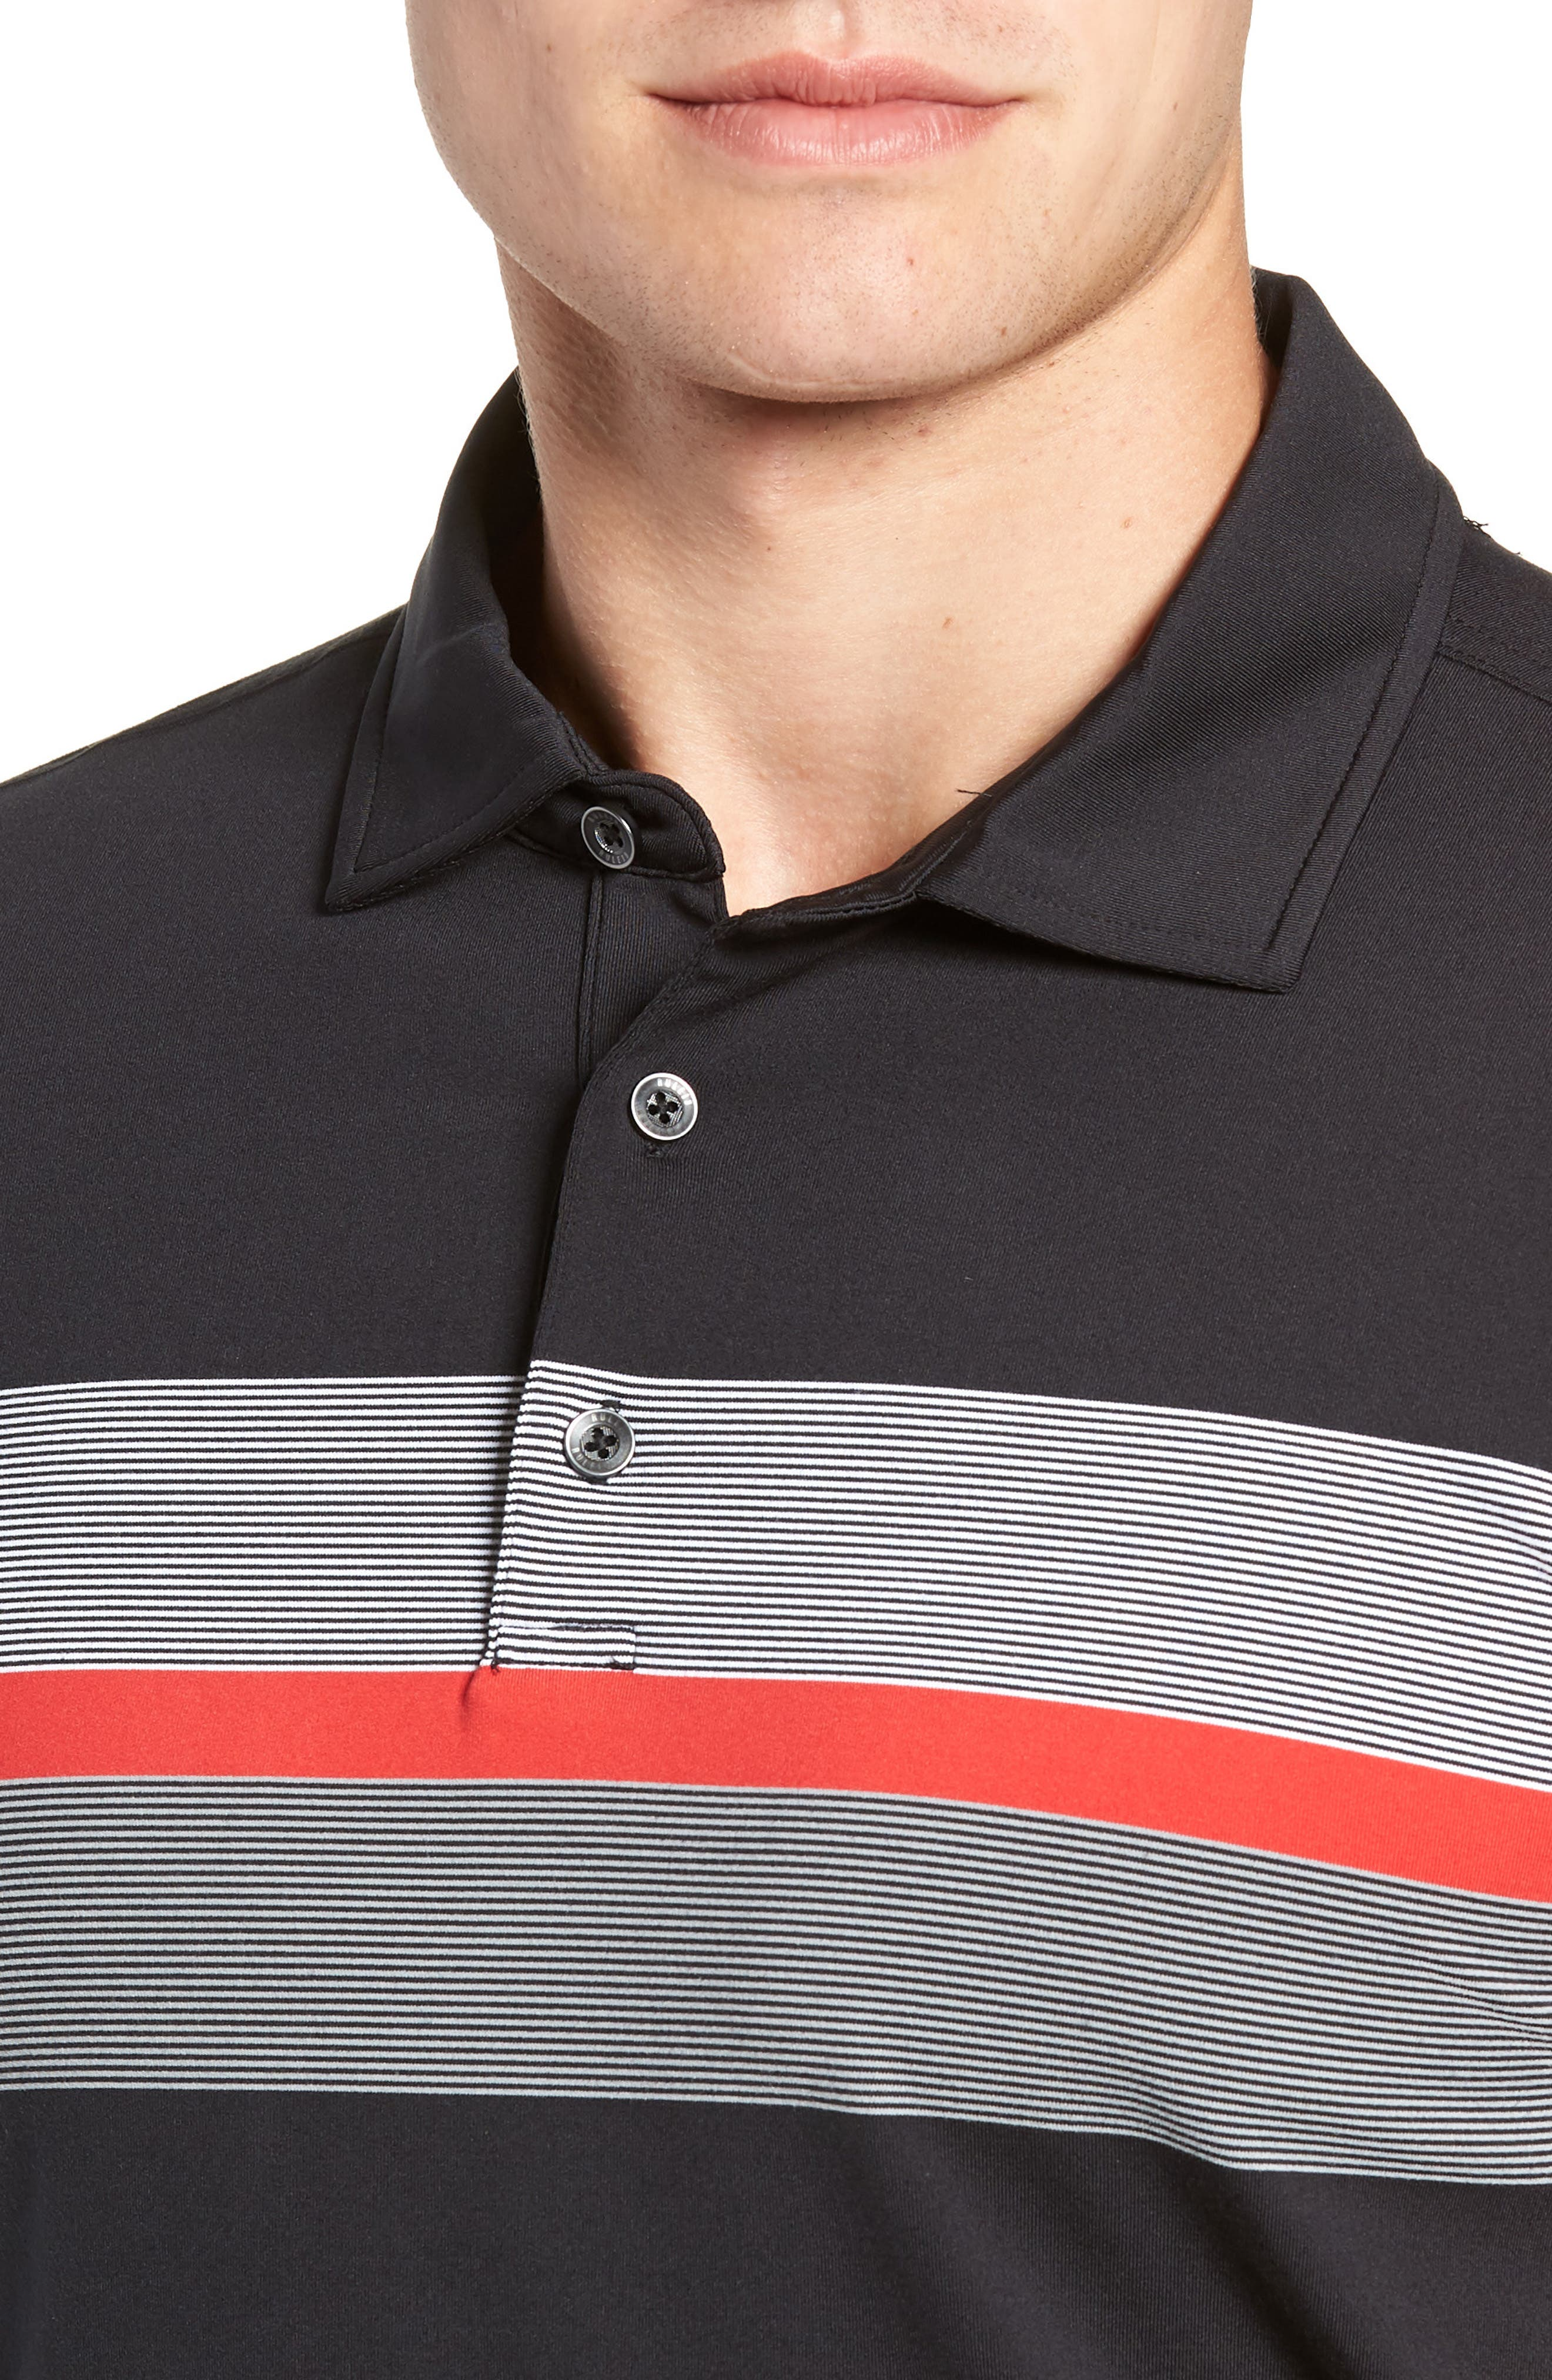 R18 Tech Daytona Stripe Golf Polo,                             Alternate thumbnail 4, color,                             BLACK